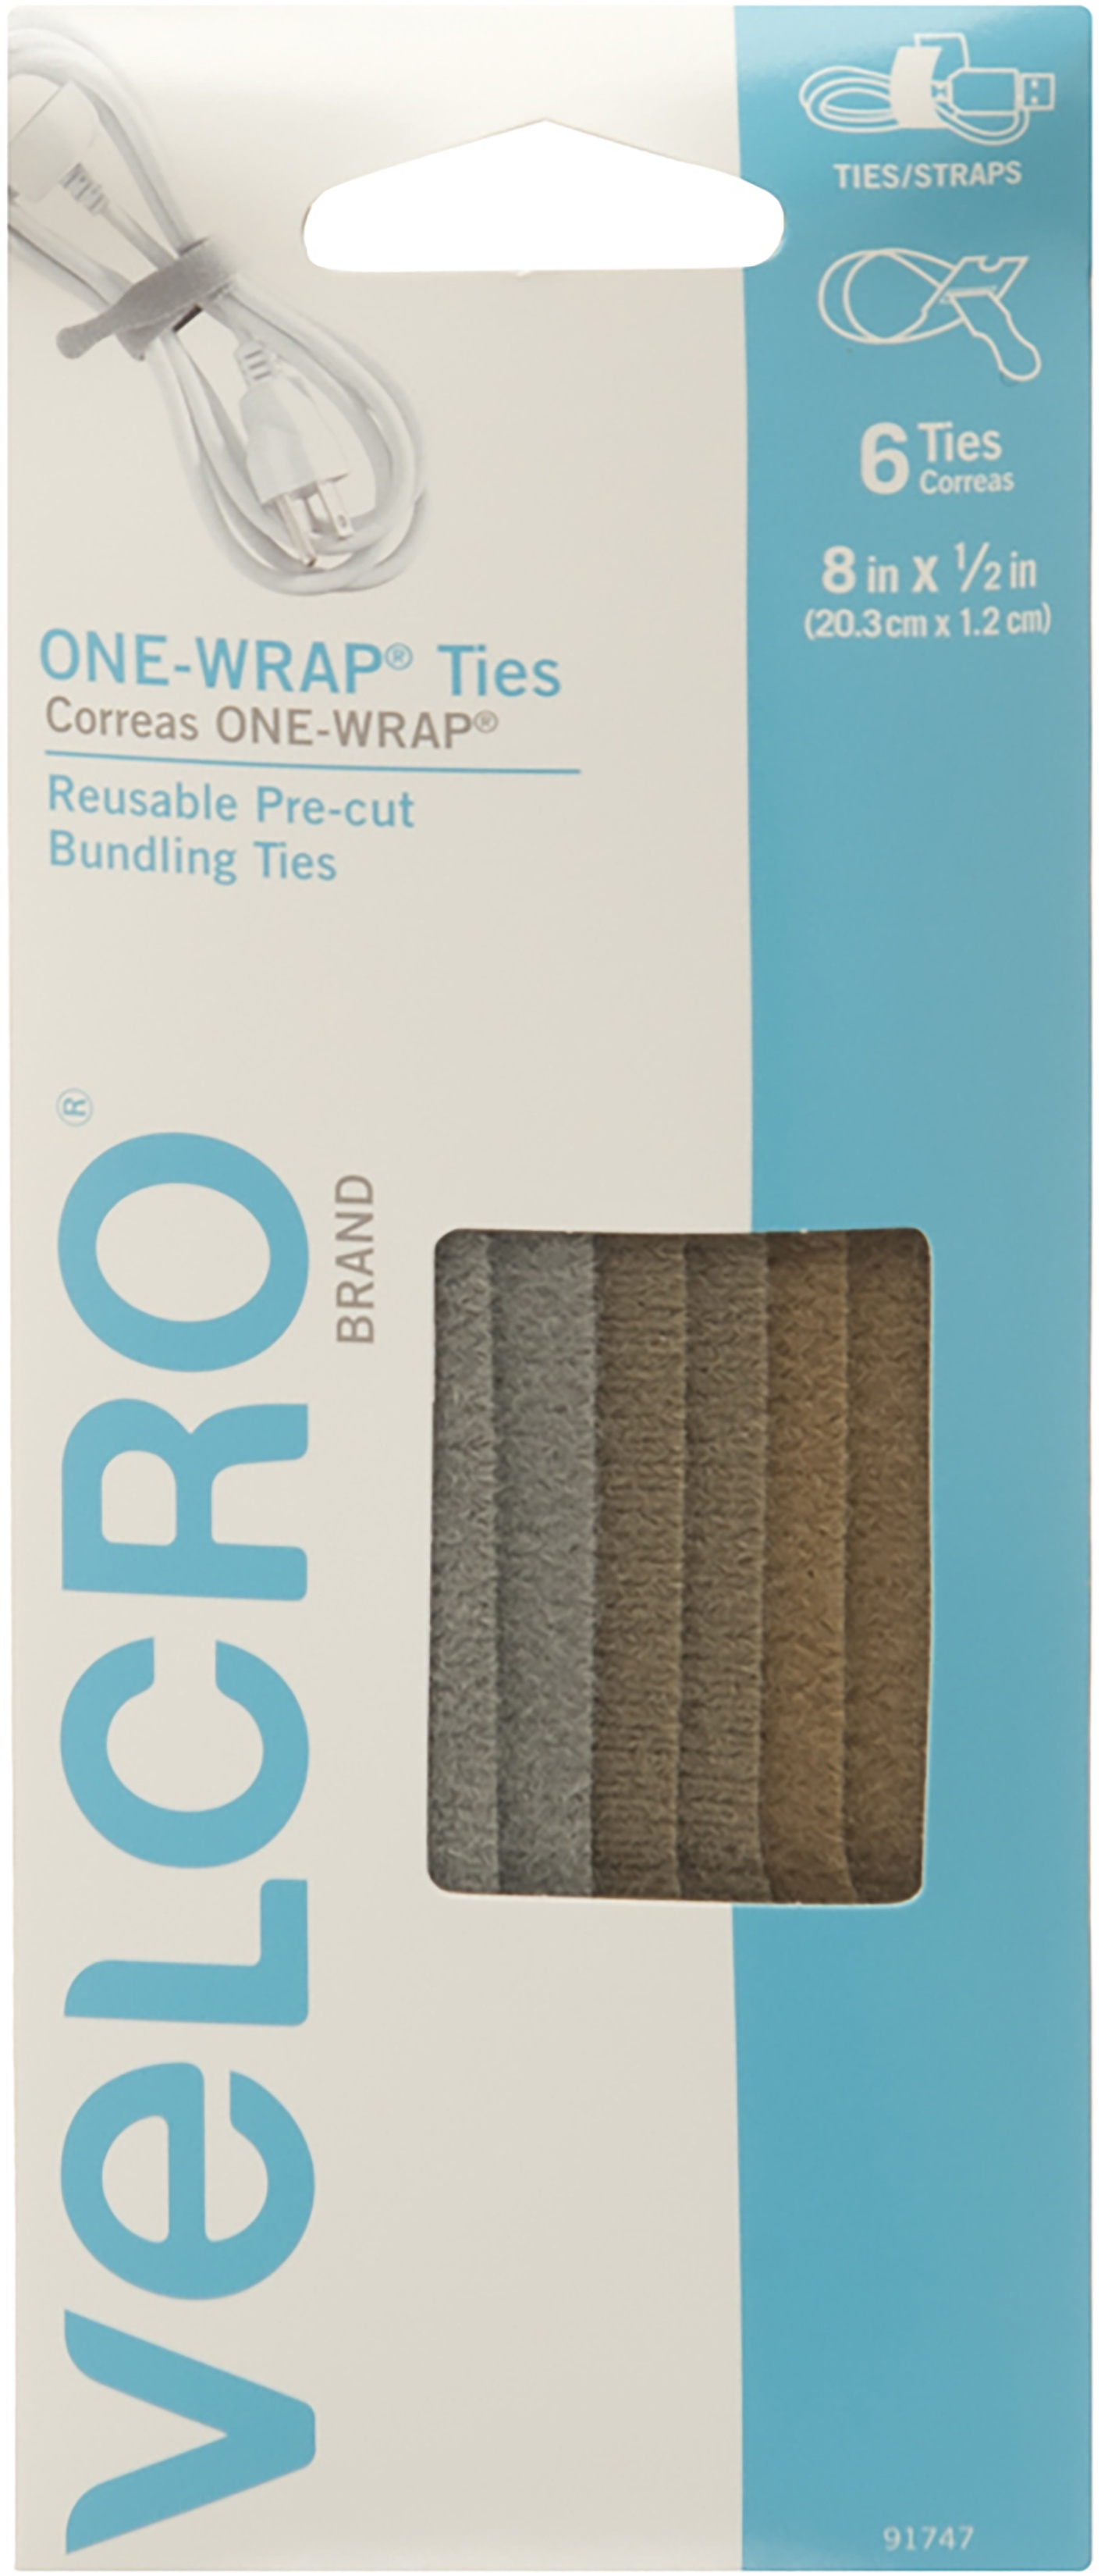 Military Multi-Color - VELCRO(R) Brand ONE-WRAP(R) Thin Ties .5